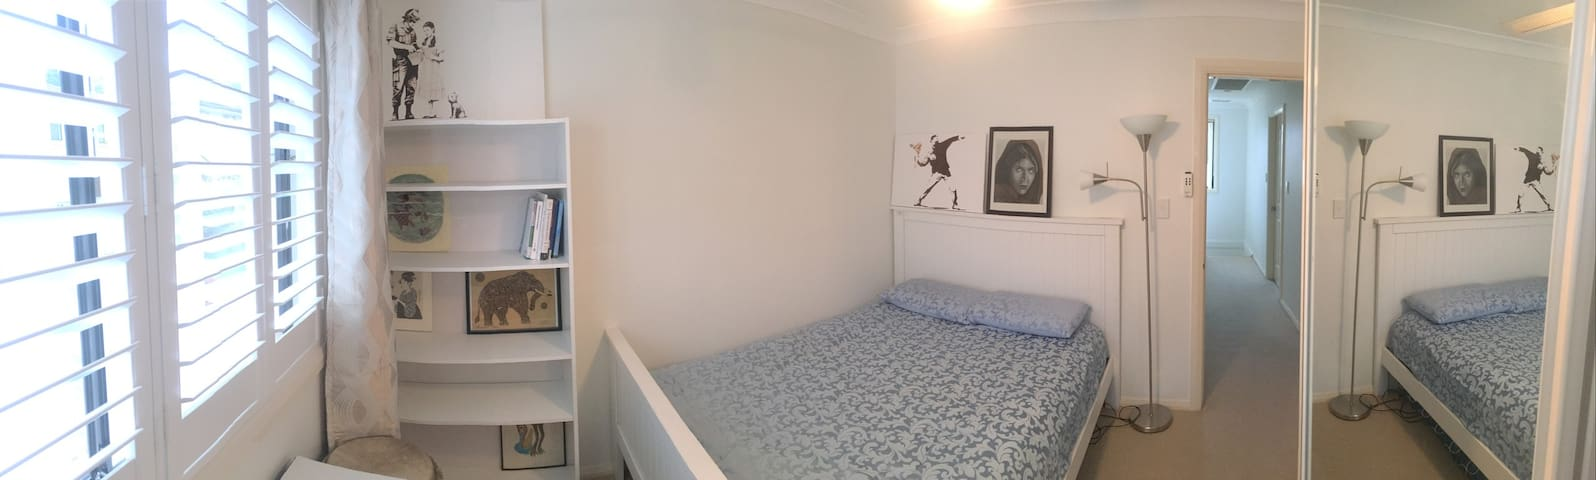 Spare room neat A/C Close to shops and transport - Woonona - Townhouse